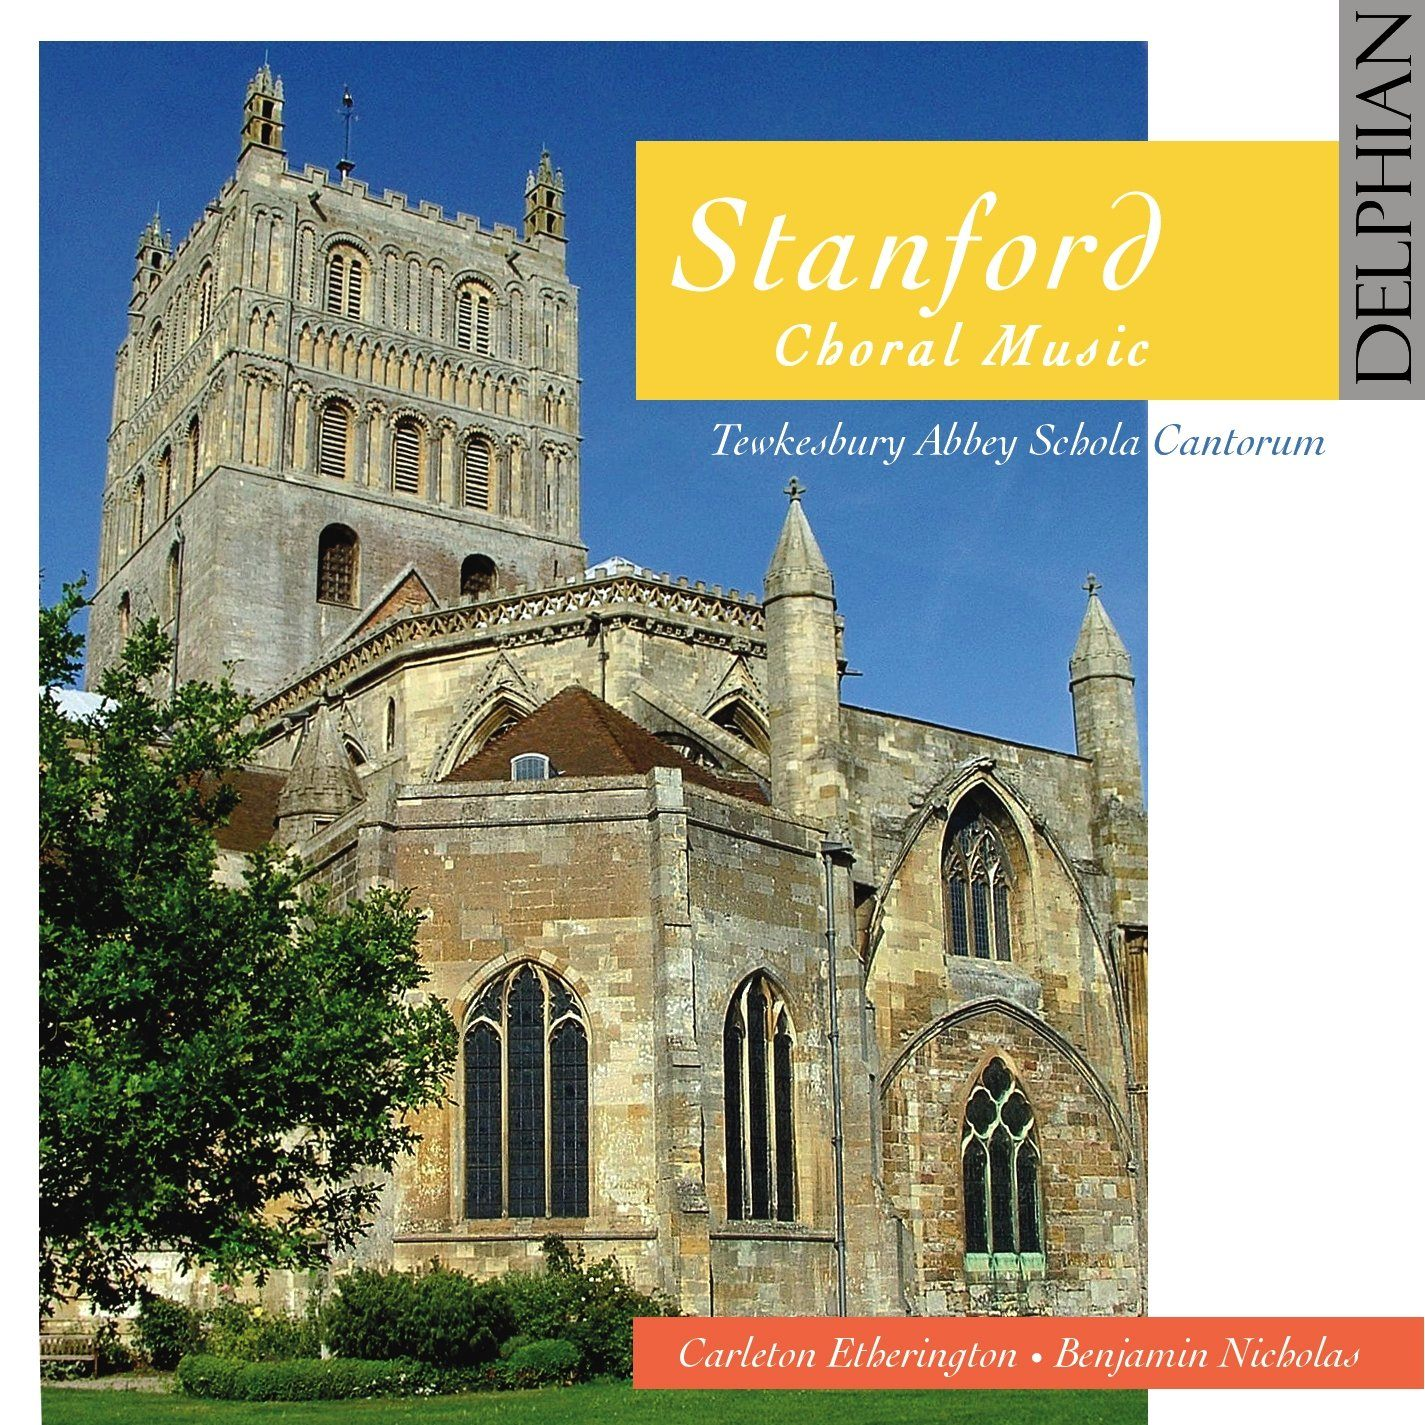 Stanford: Choral Music CD Delphian Records